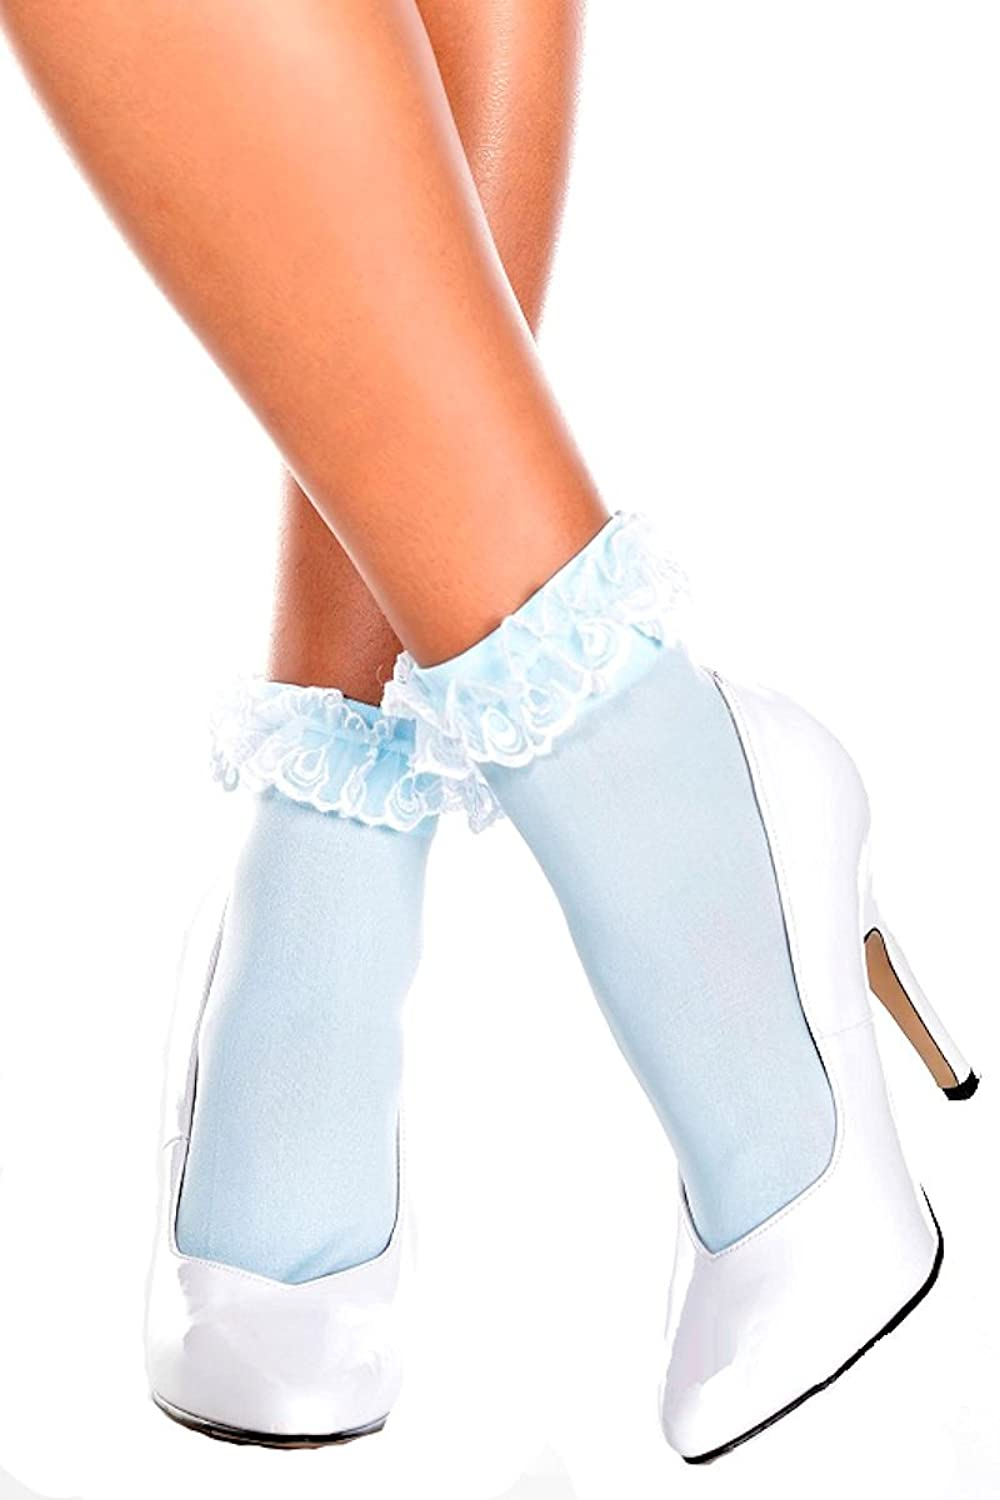 Vintage Socks | 1920s, 1930s, 1940s, 1950s, 1960s History Opaque Ankle Hi with Ruffle Lace Top $7.82 AT vintagedancer.com